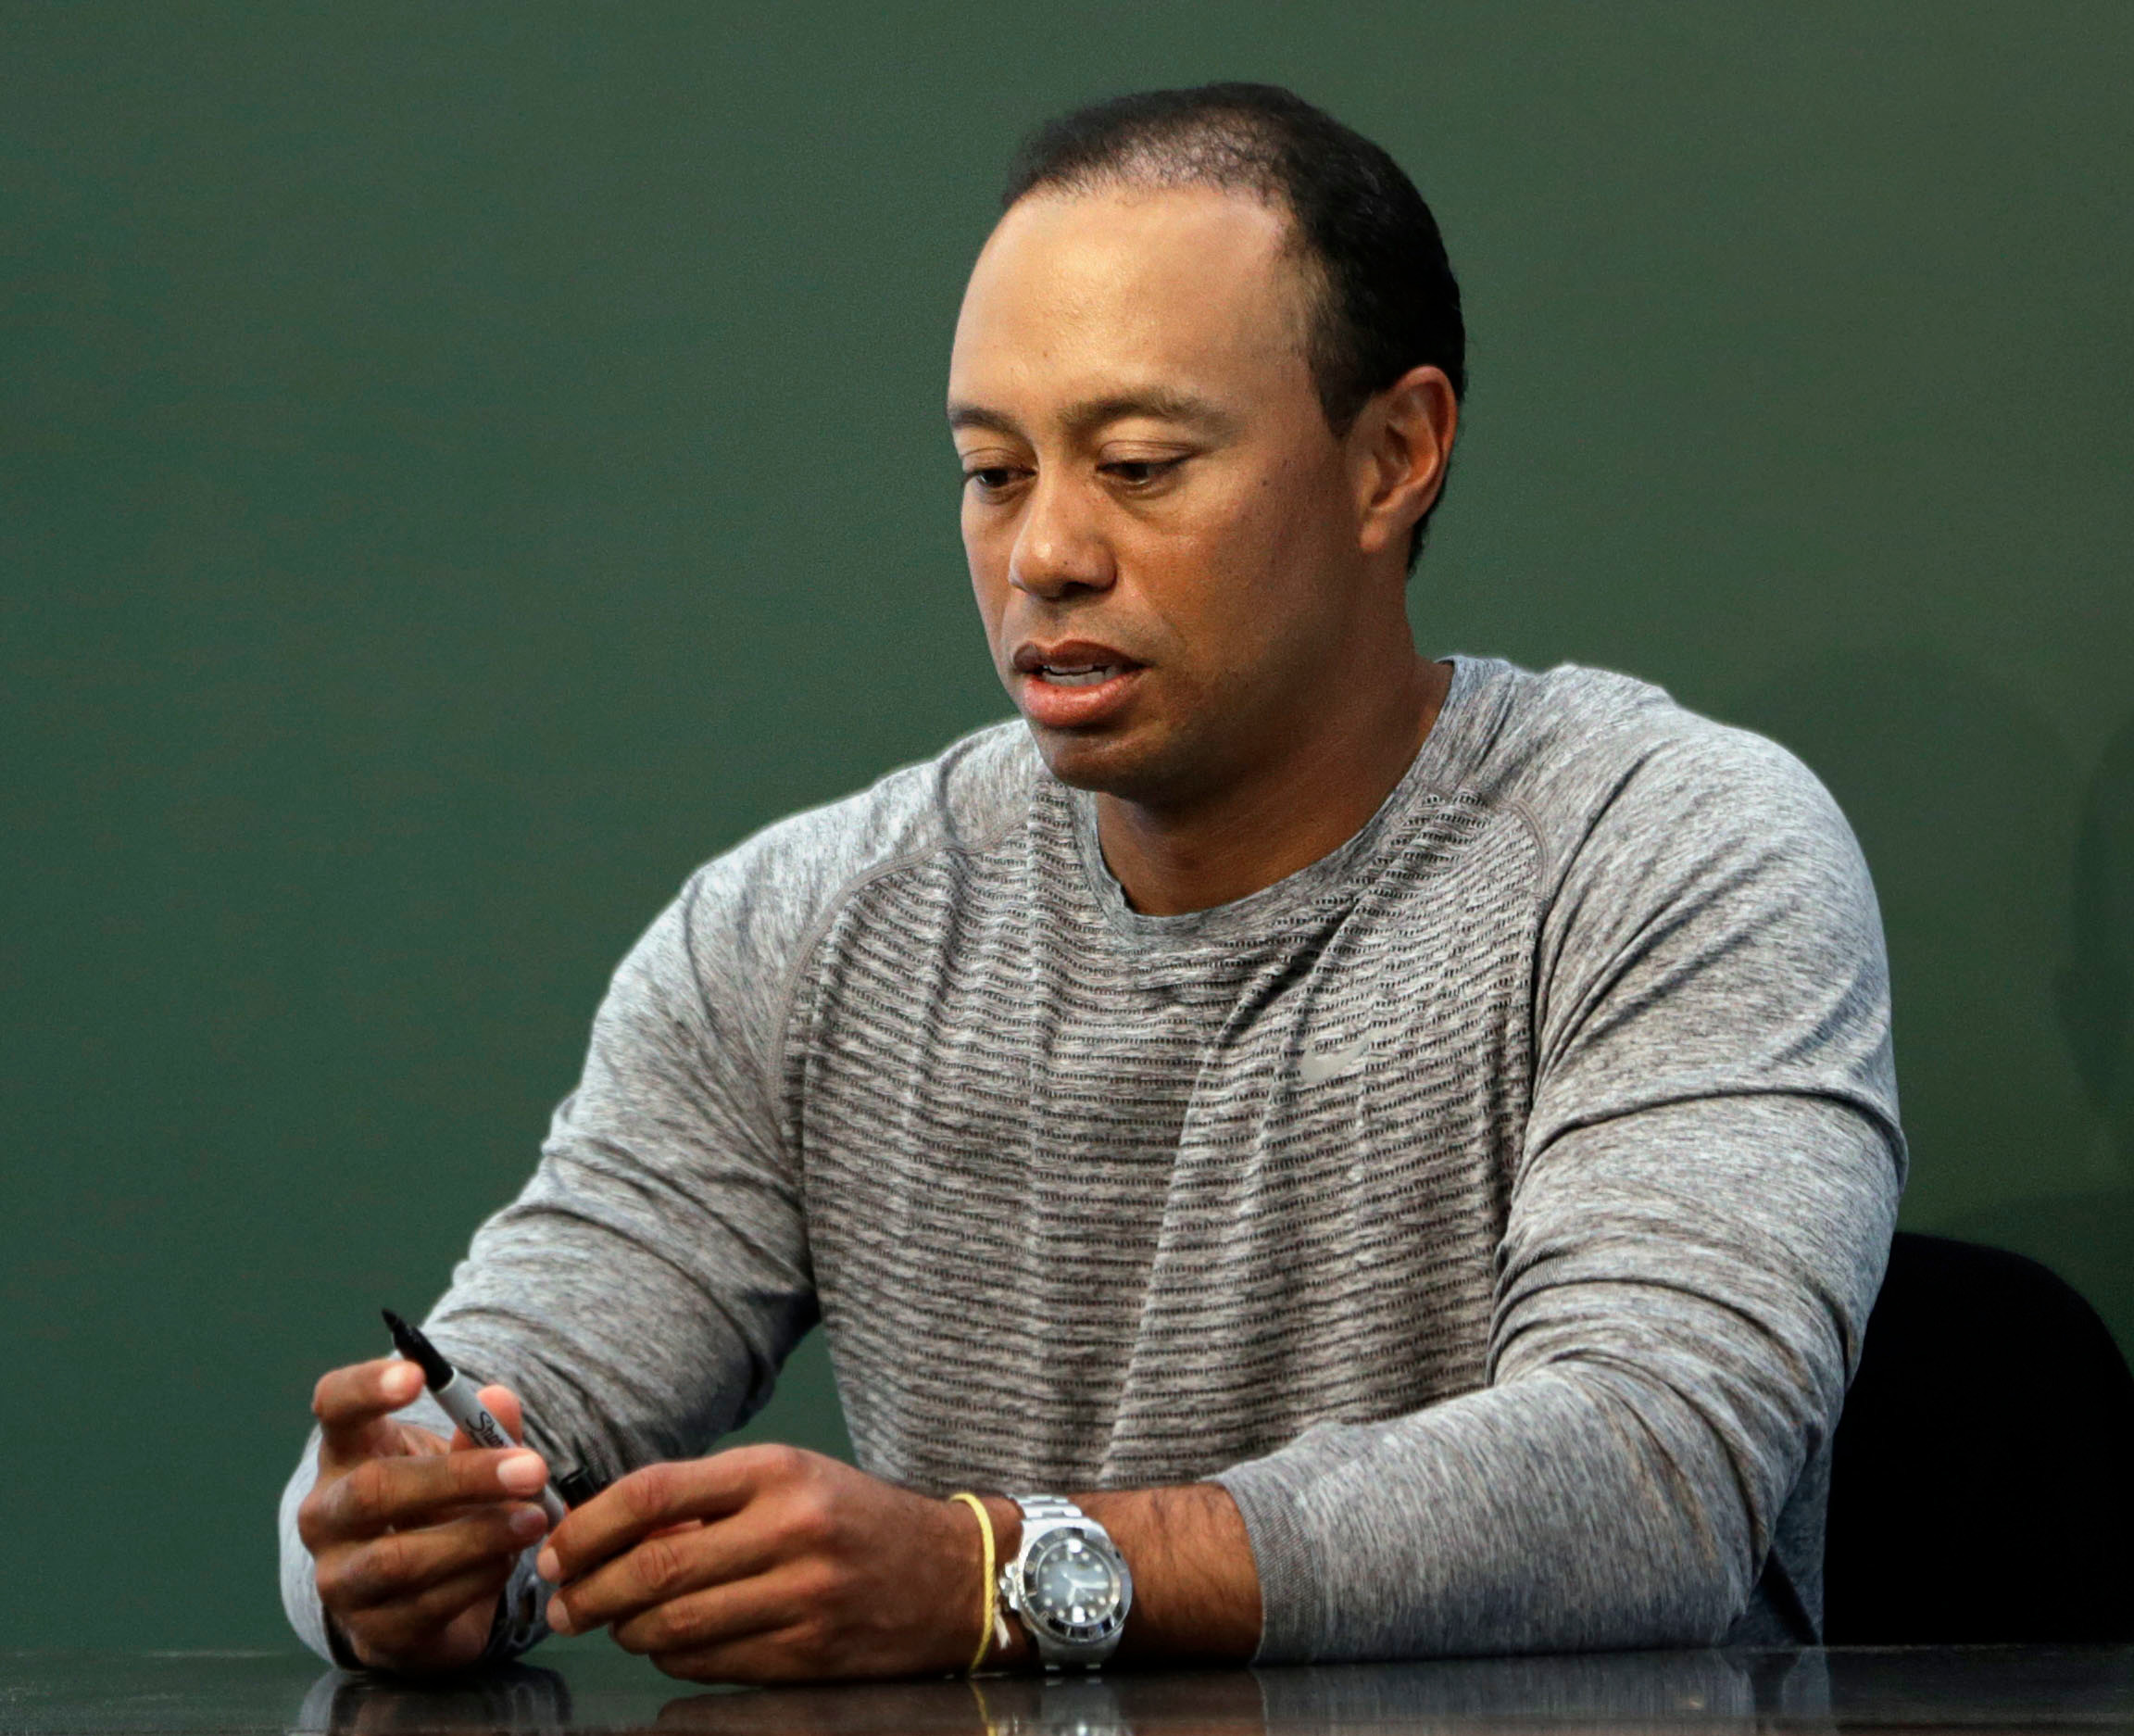 Tiger Woods Dash Cam Arrest Footage Released - And It's Not Looking Good